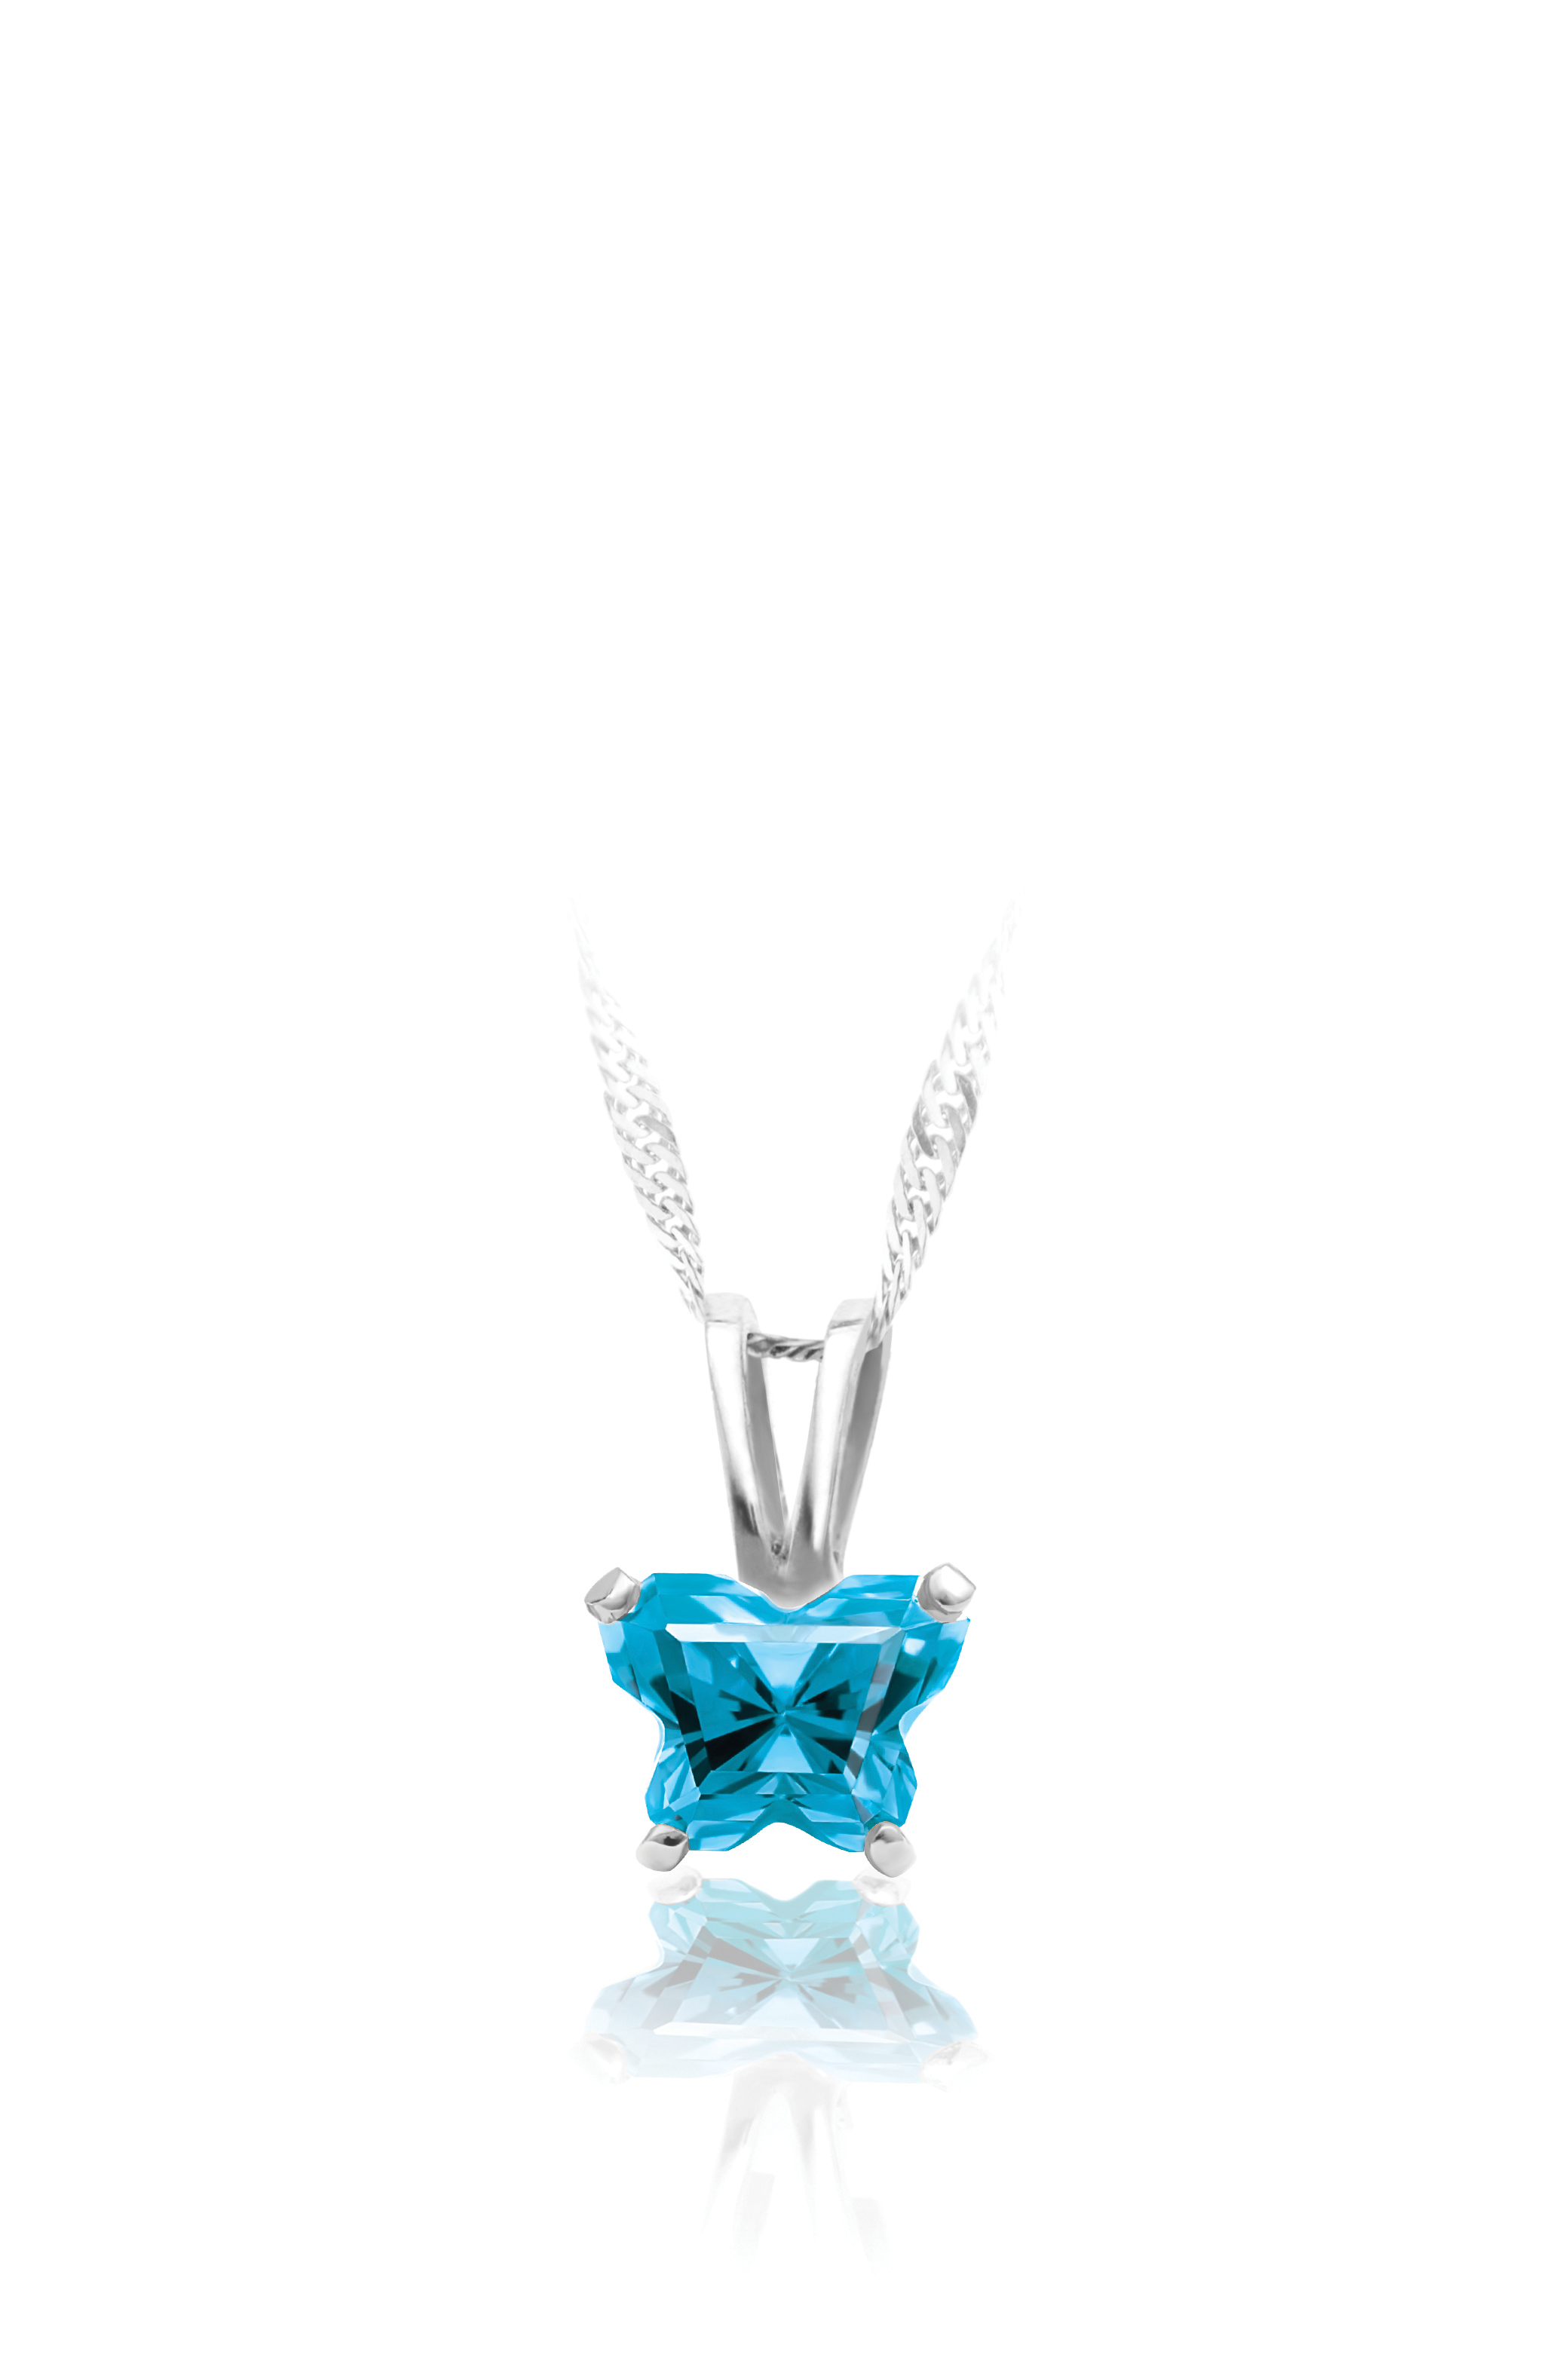 pendant for babies in sterling silver with blue cubic zirconia (month of December) - Chain included